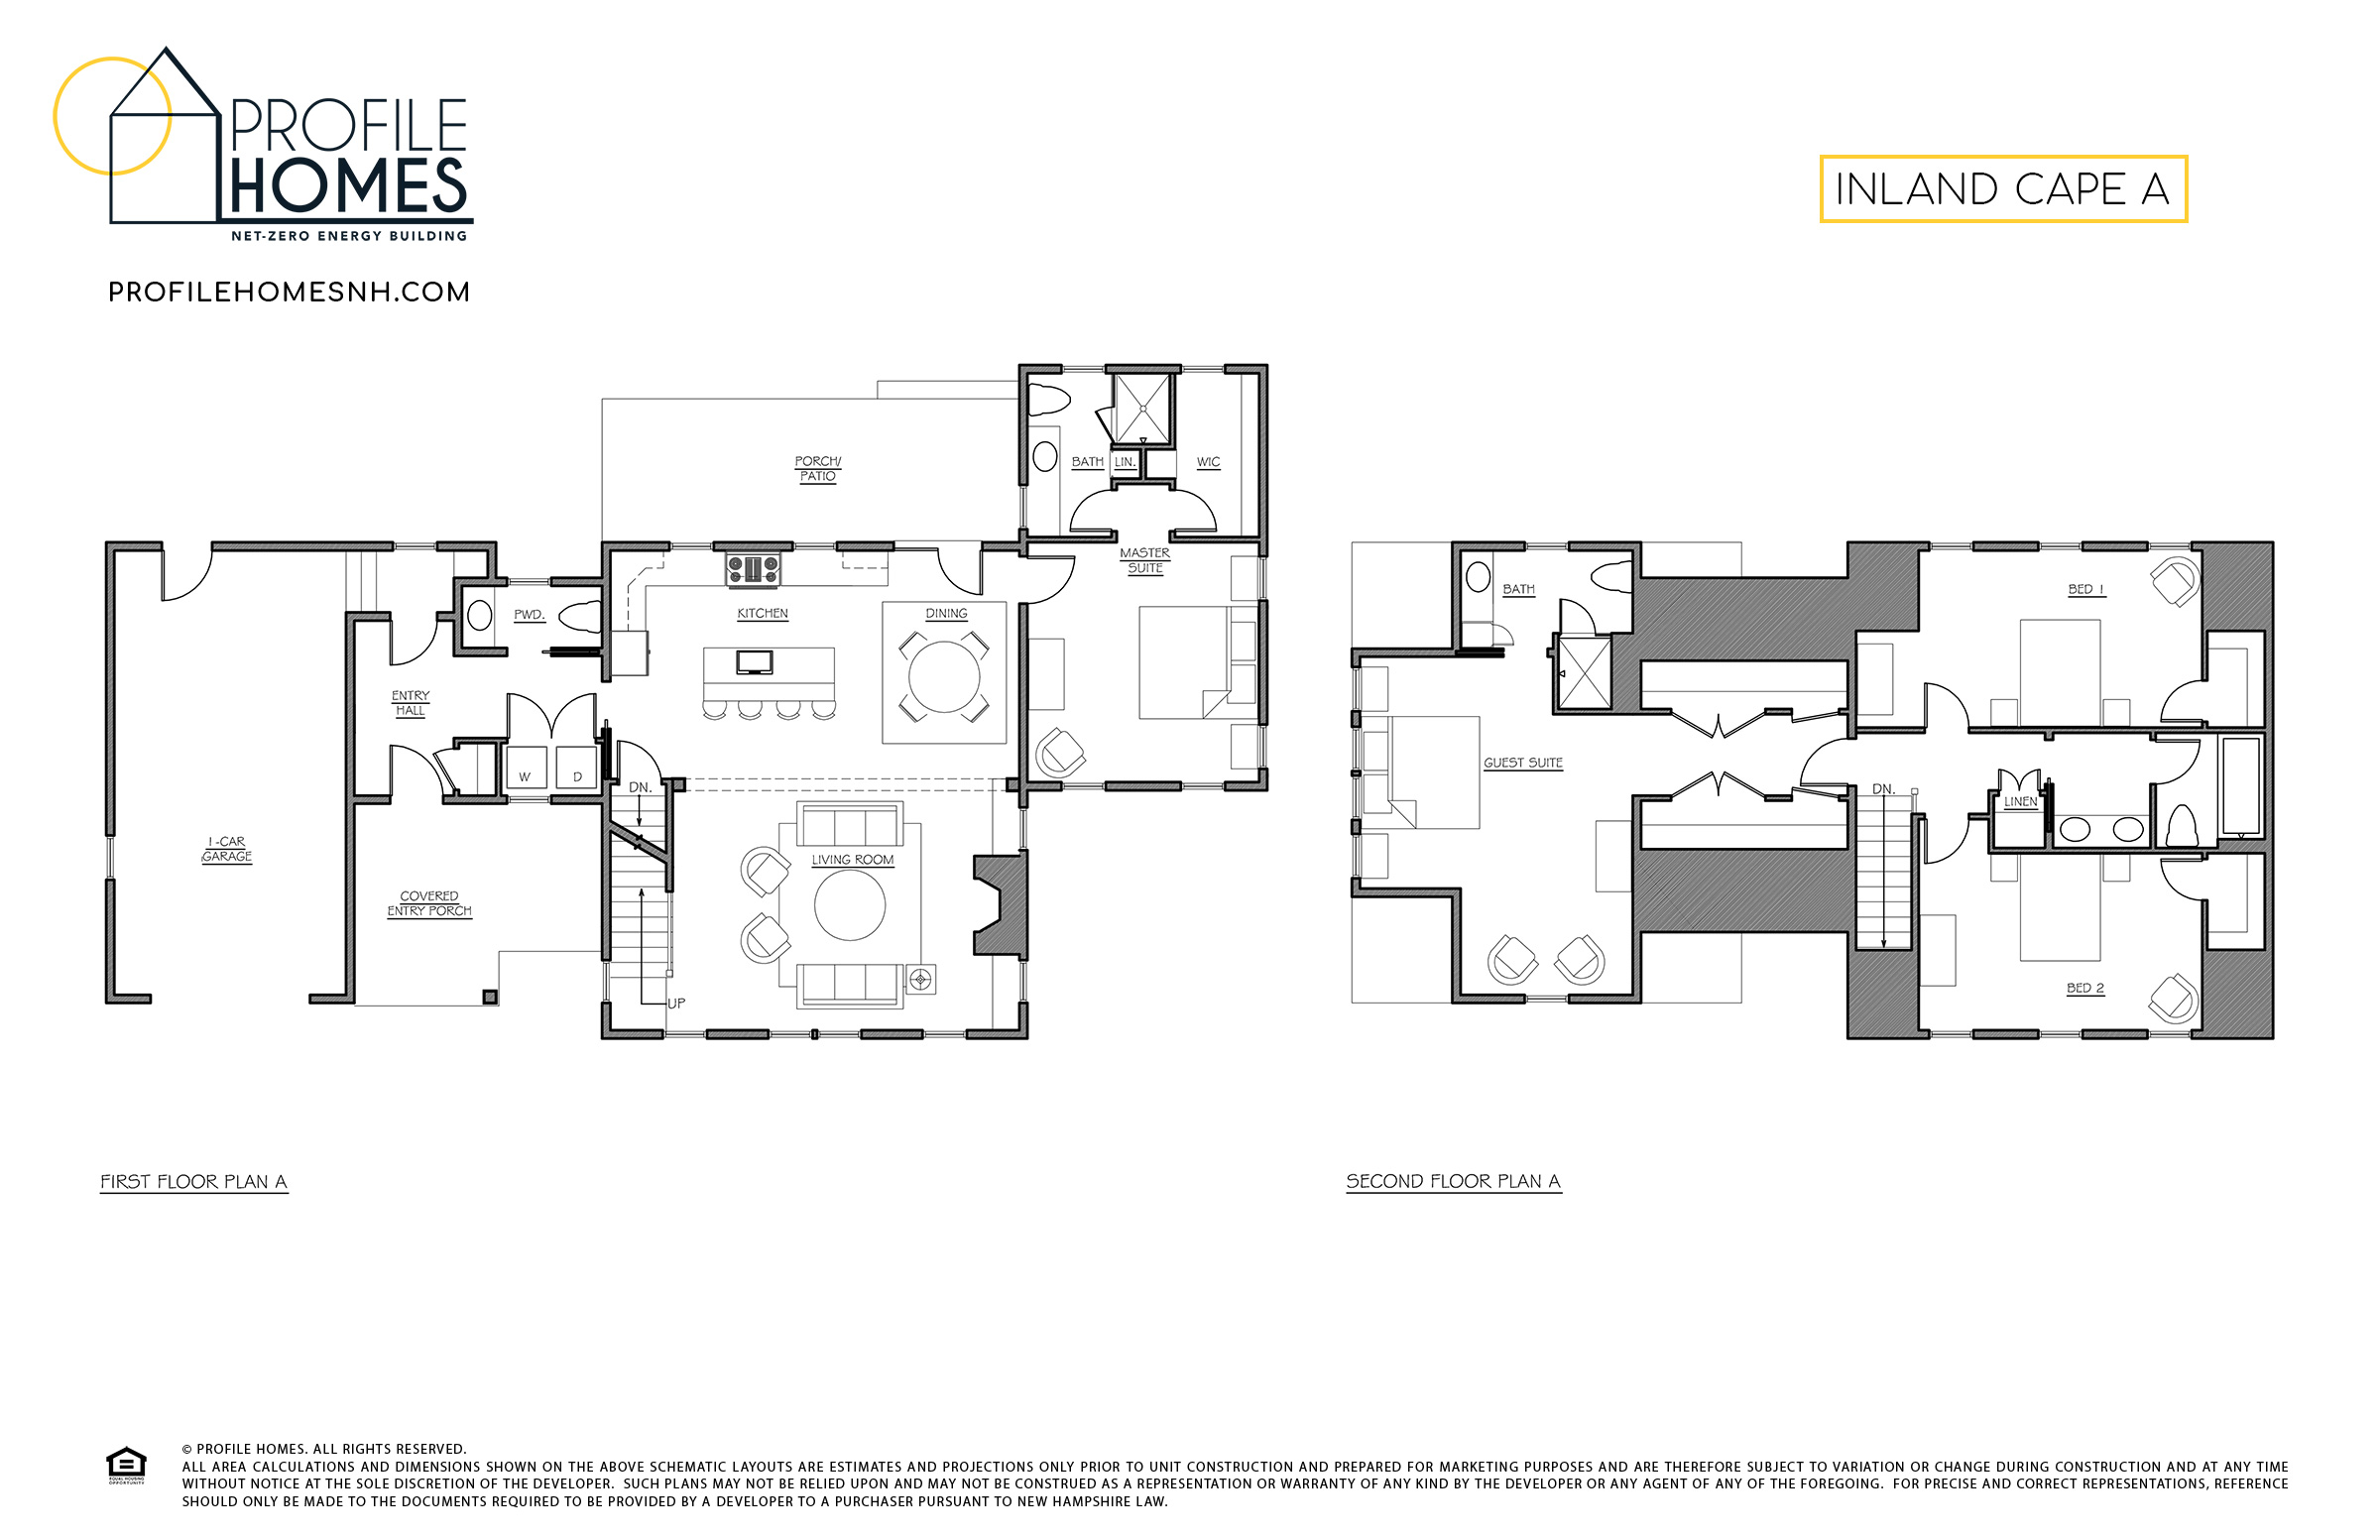 Profile Homes Floorplan Inland Cape A © 2018 Profile Homes